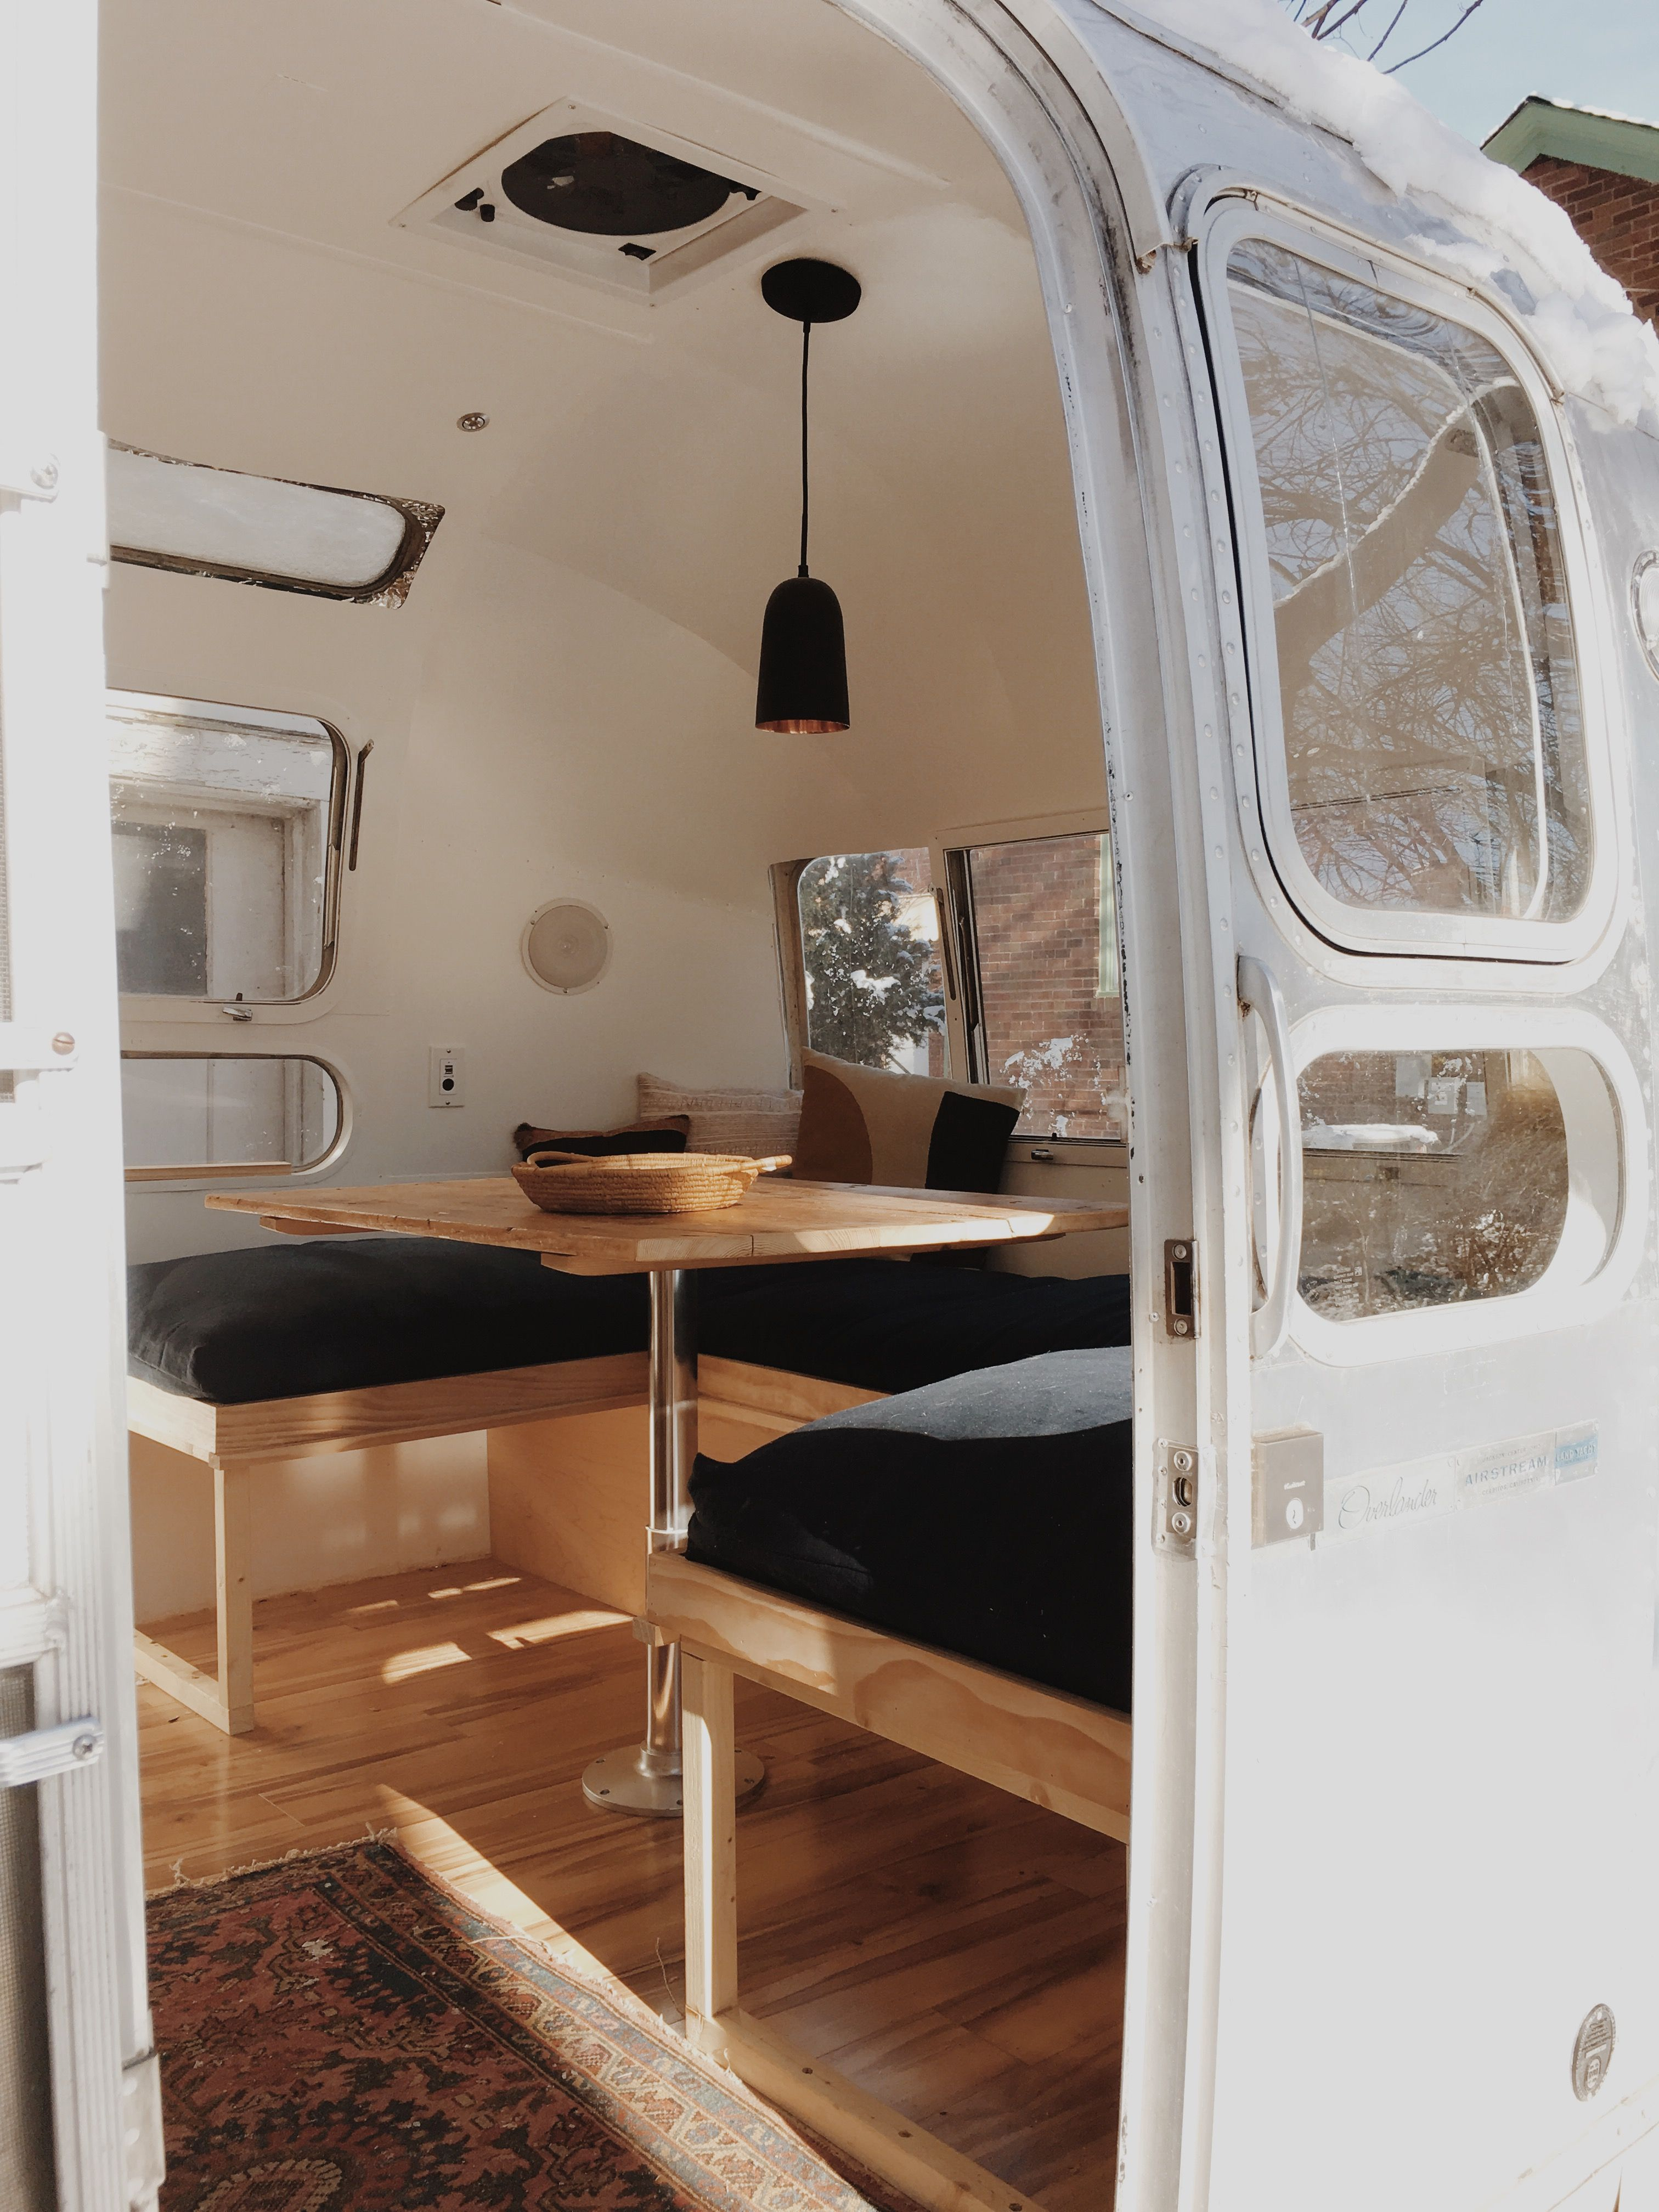 Birch pine 1977 complete airstream overhaul and for Airstream decor